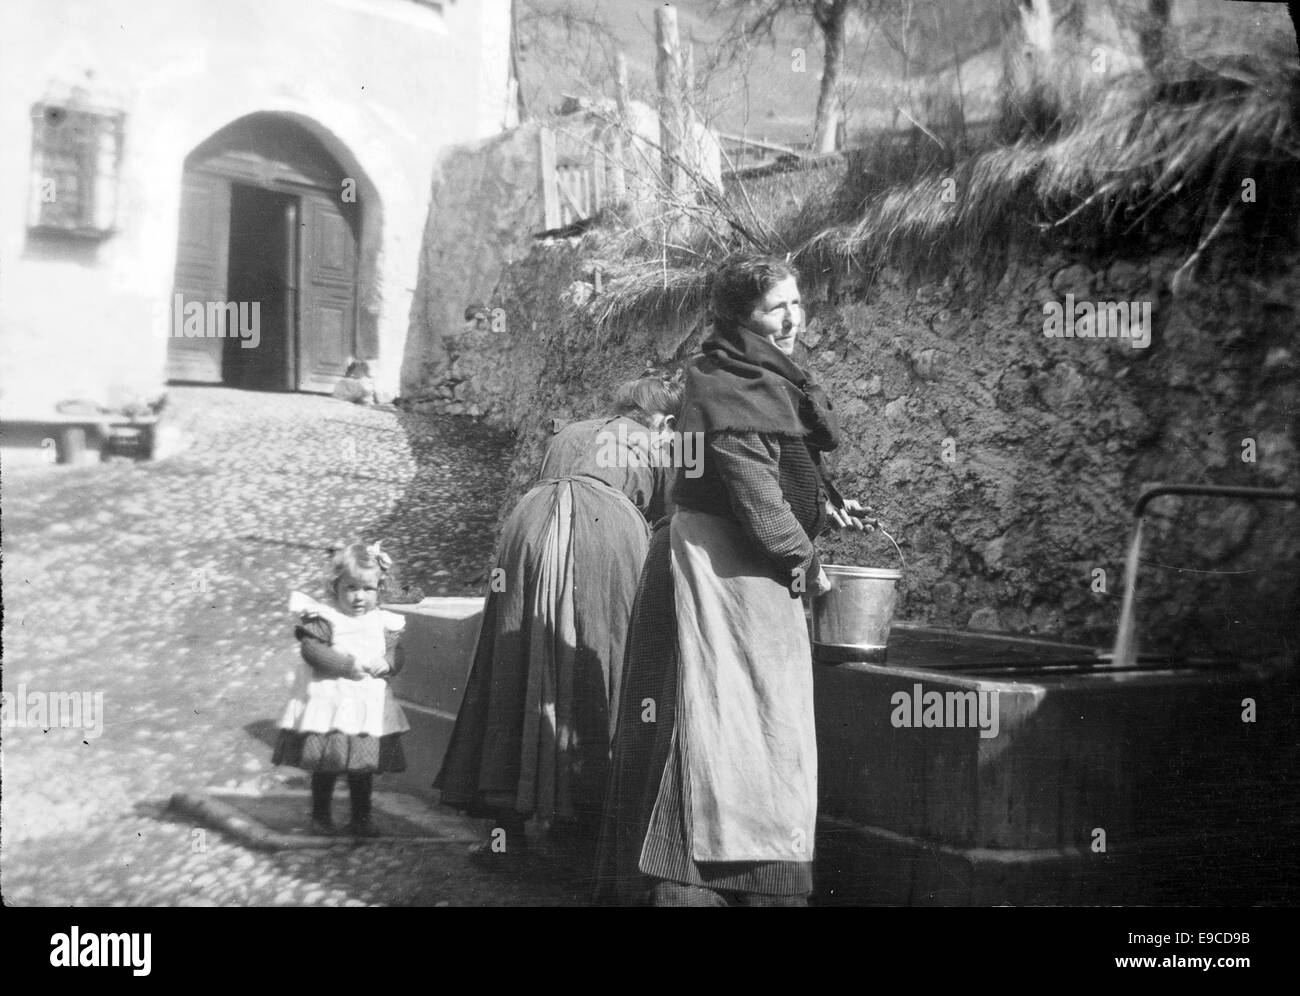 Women and a child at a well. Switzerland - Stock Image